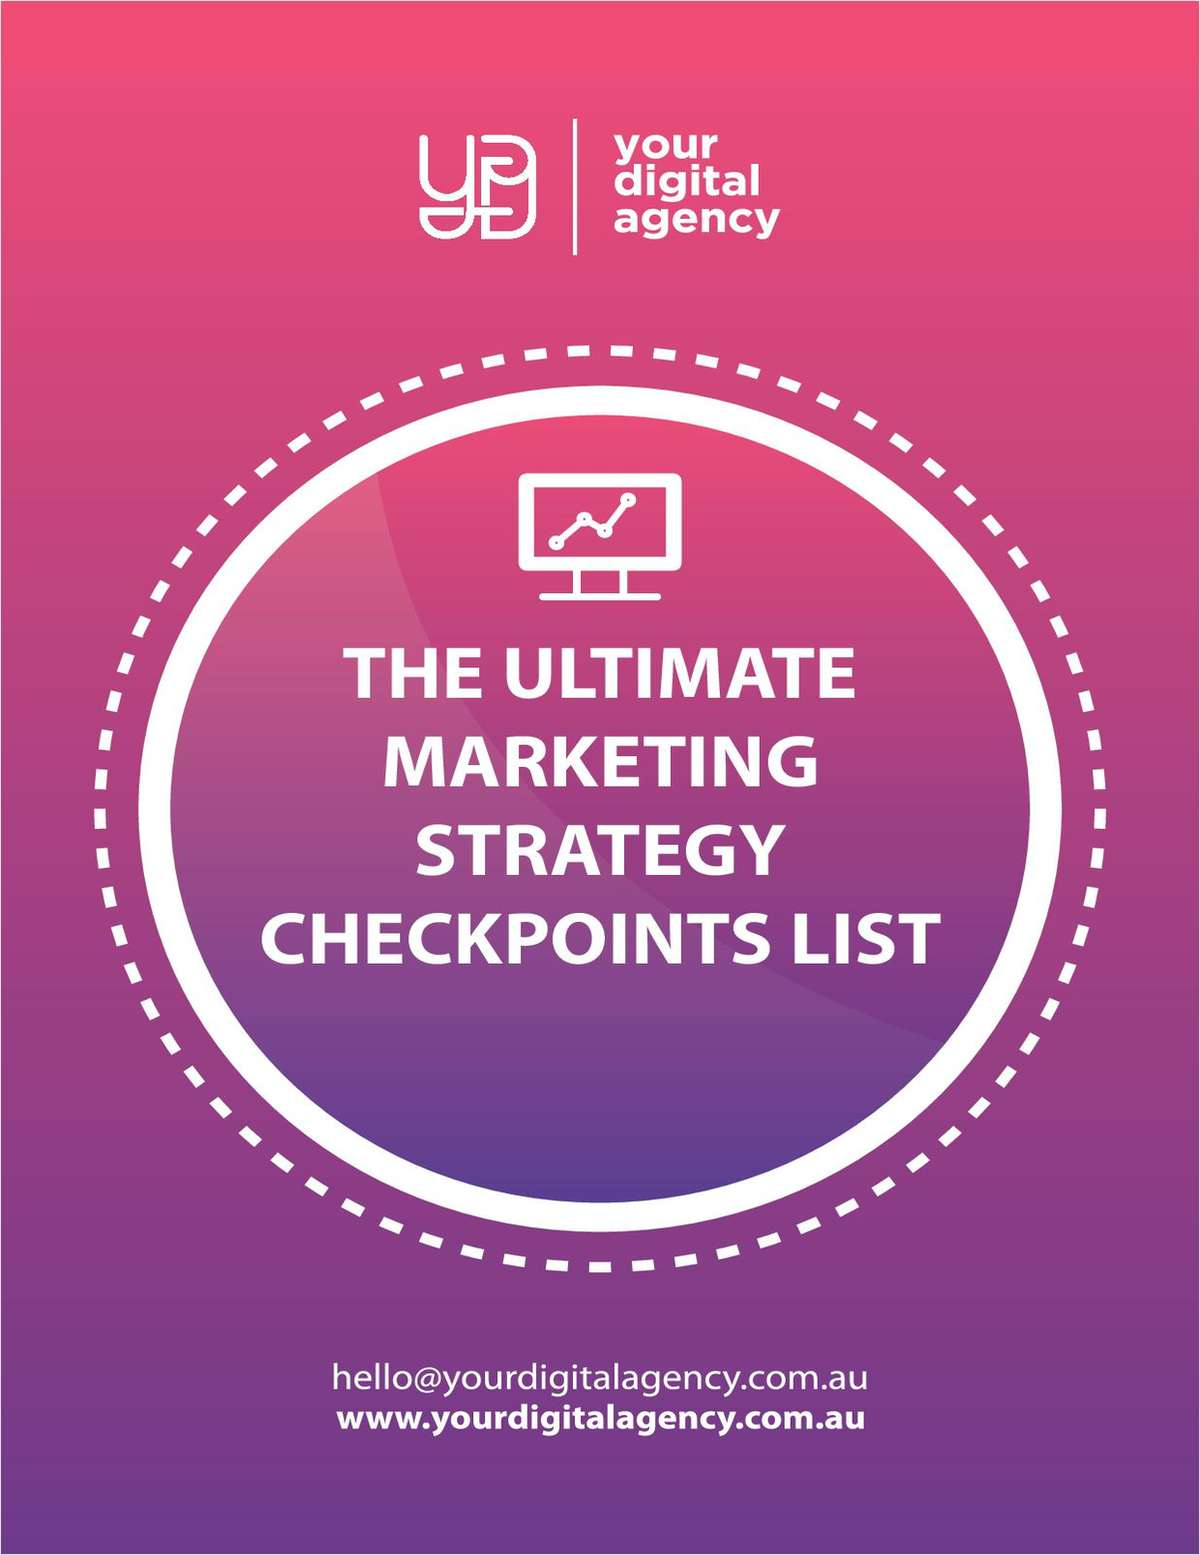 The Ultimate Marketing Strategy Checklist